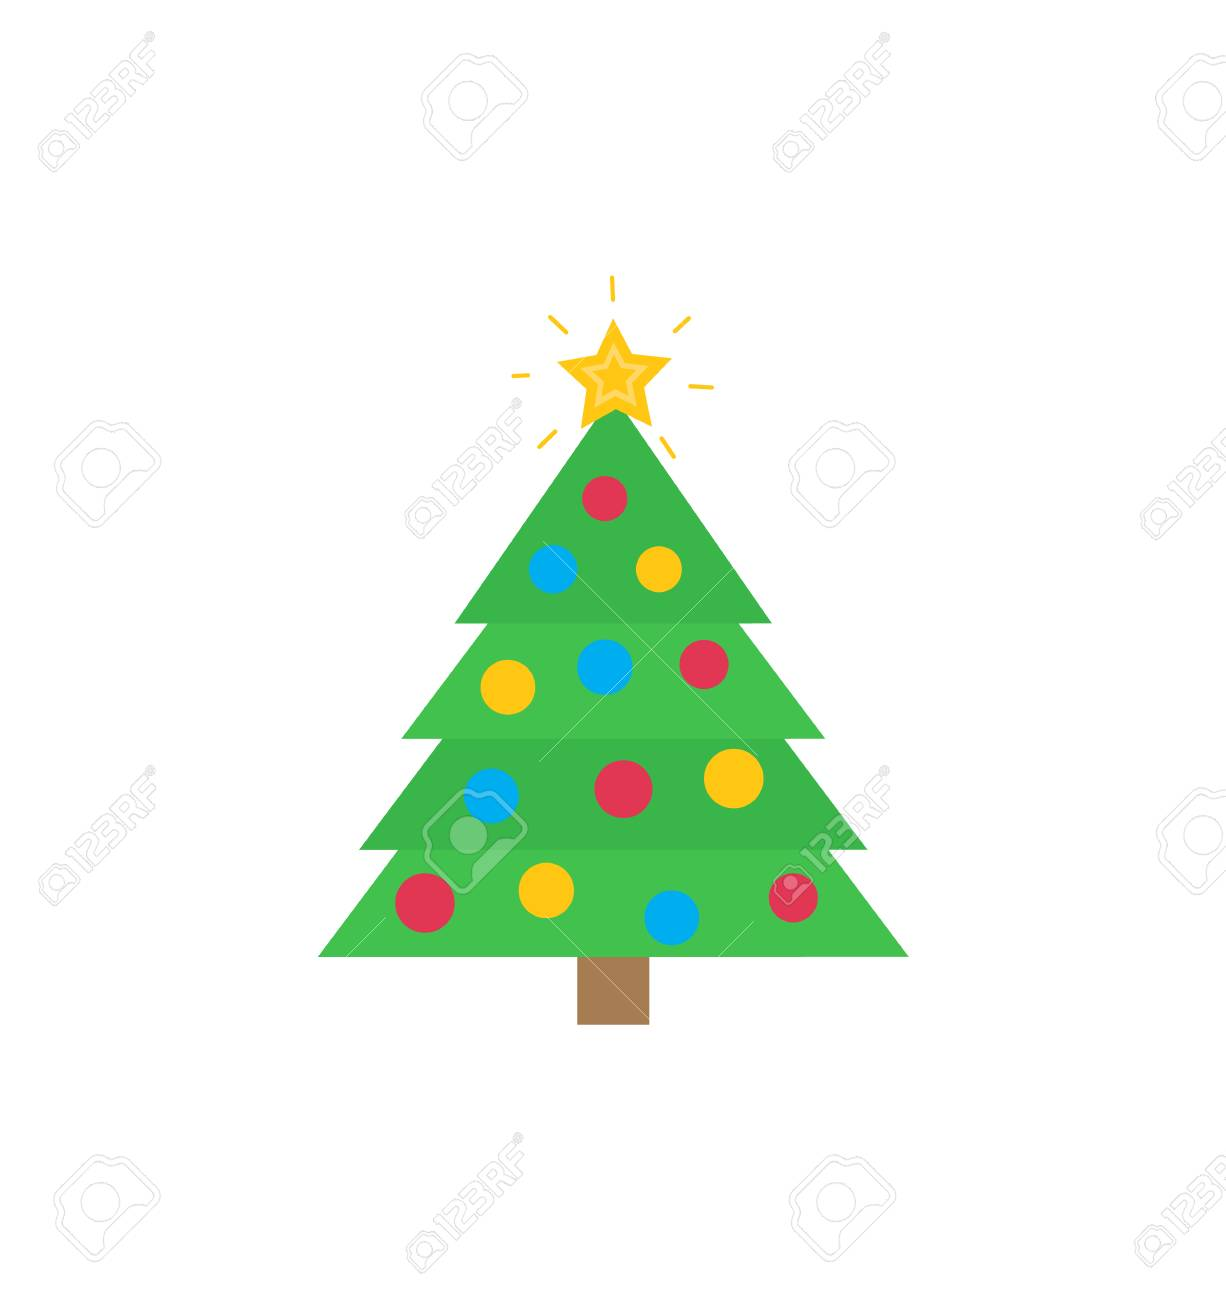 hight resolution of christmas tree with traditional decorations star bauble vector flat cartoon clipart or illustration of